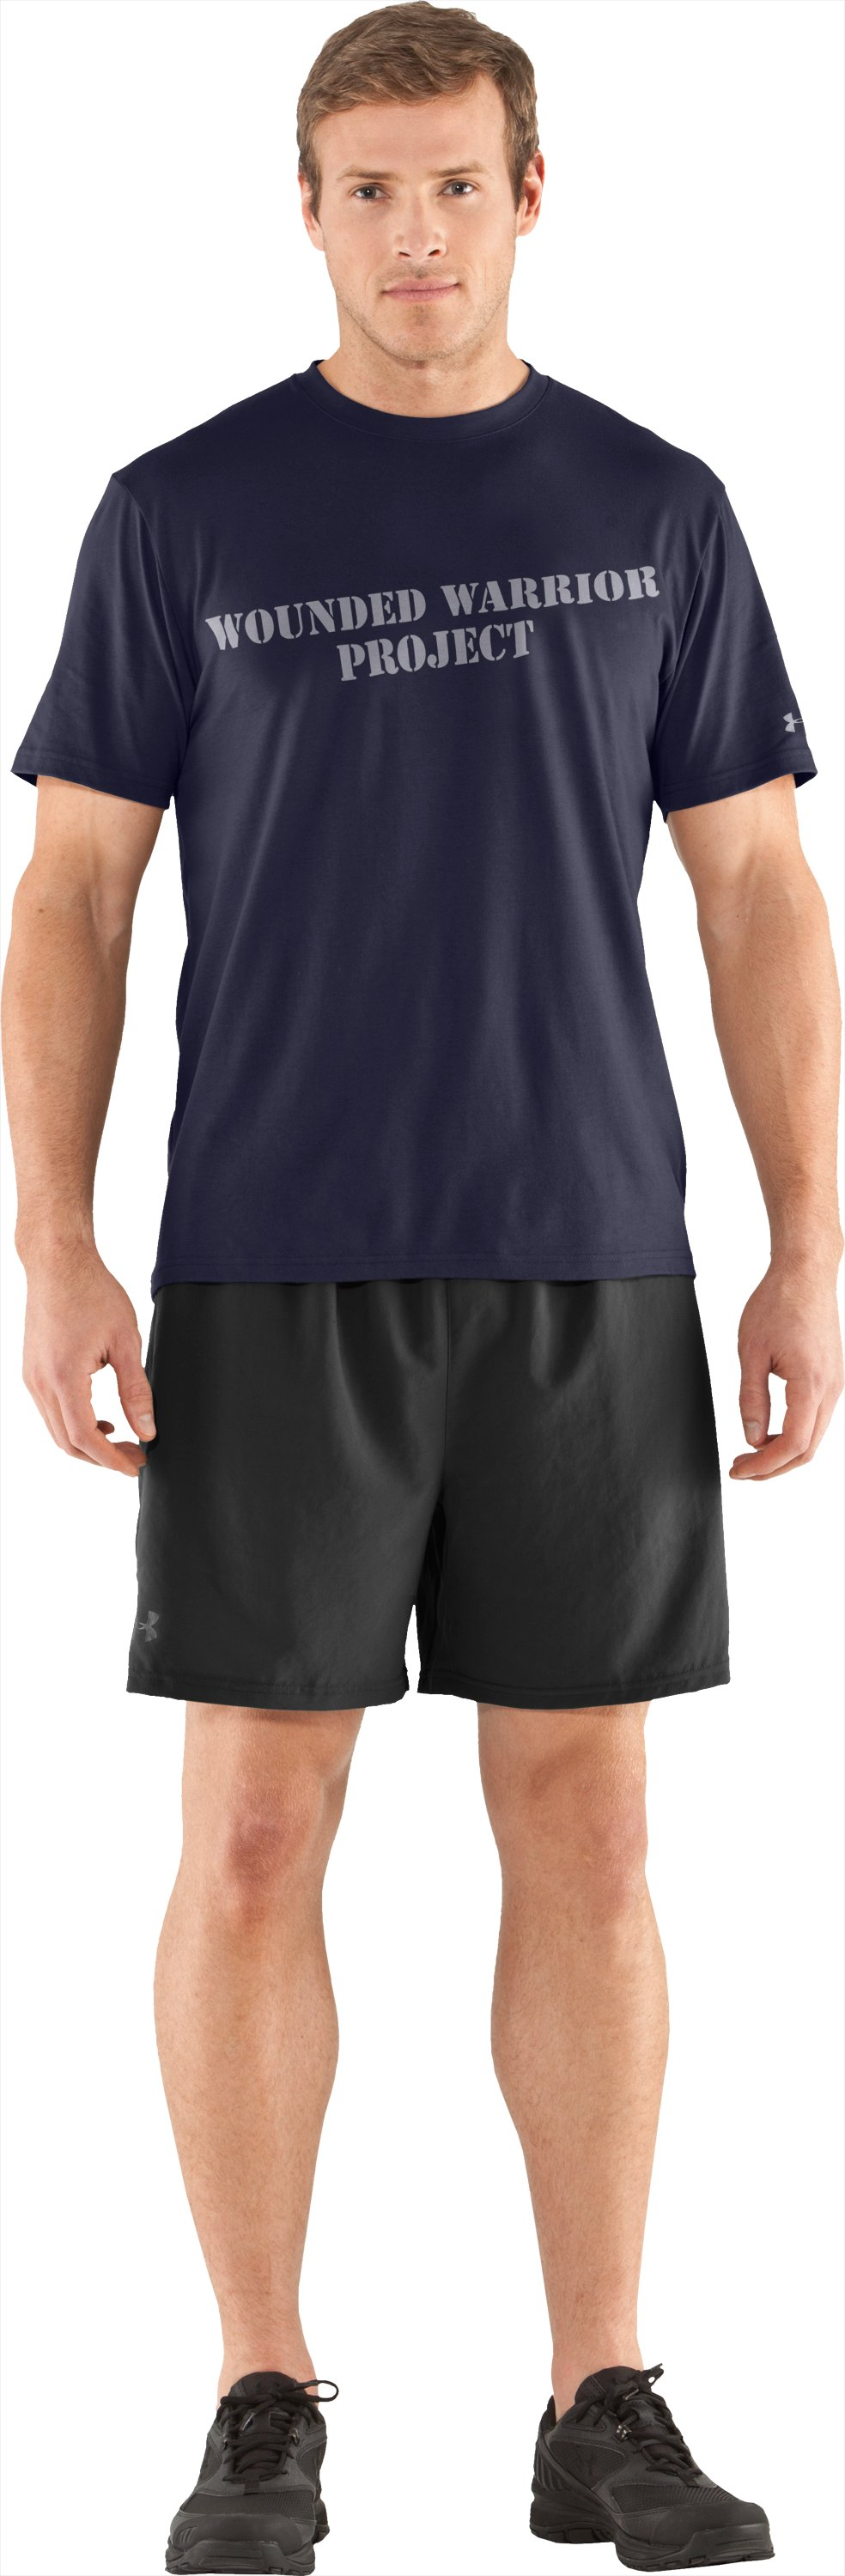 Men's WWP Graphic Short Sleeve T-Shirt, Midnight Navy, Front